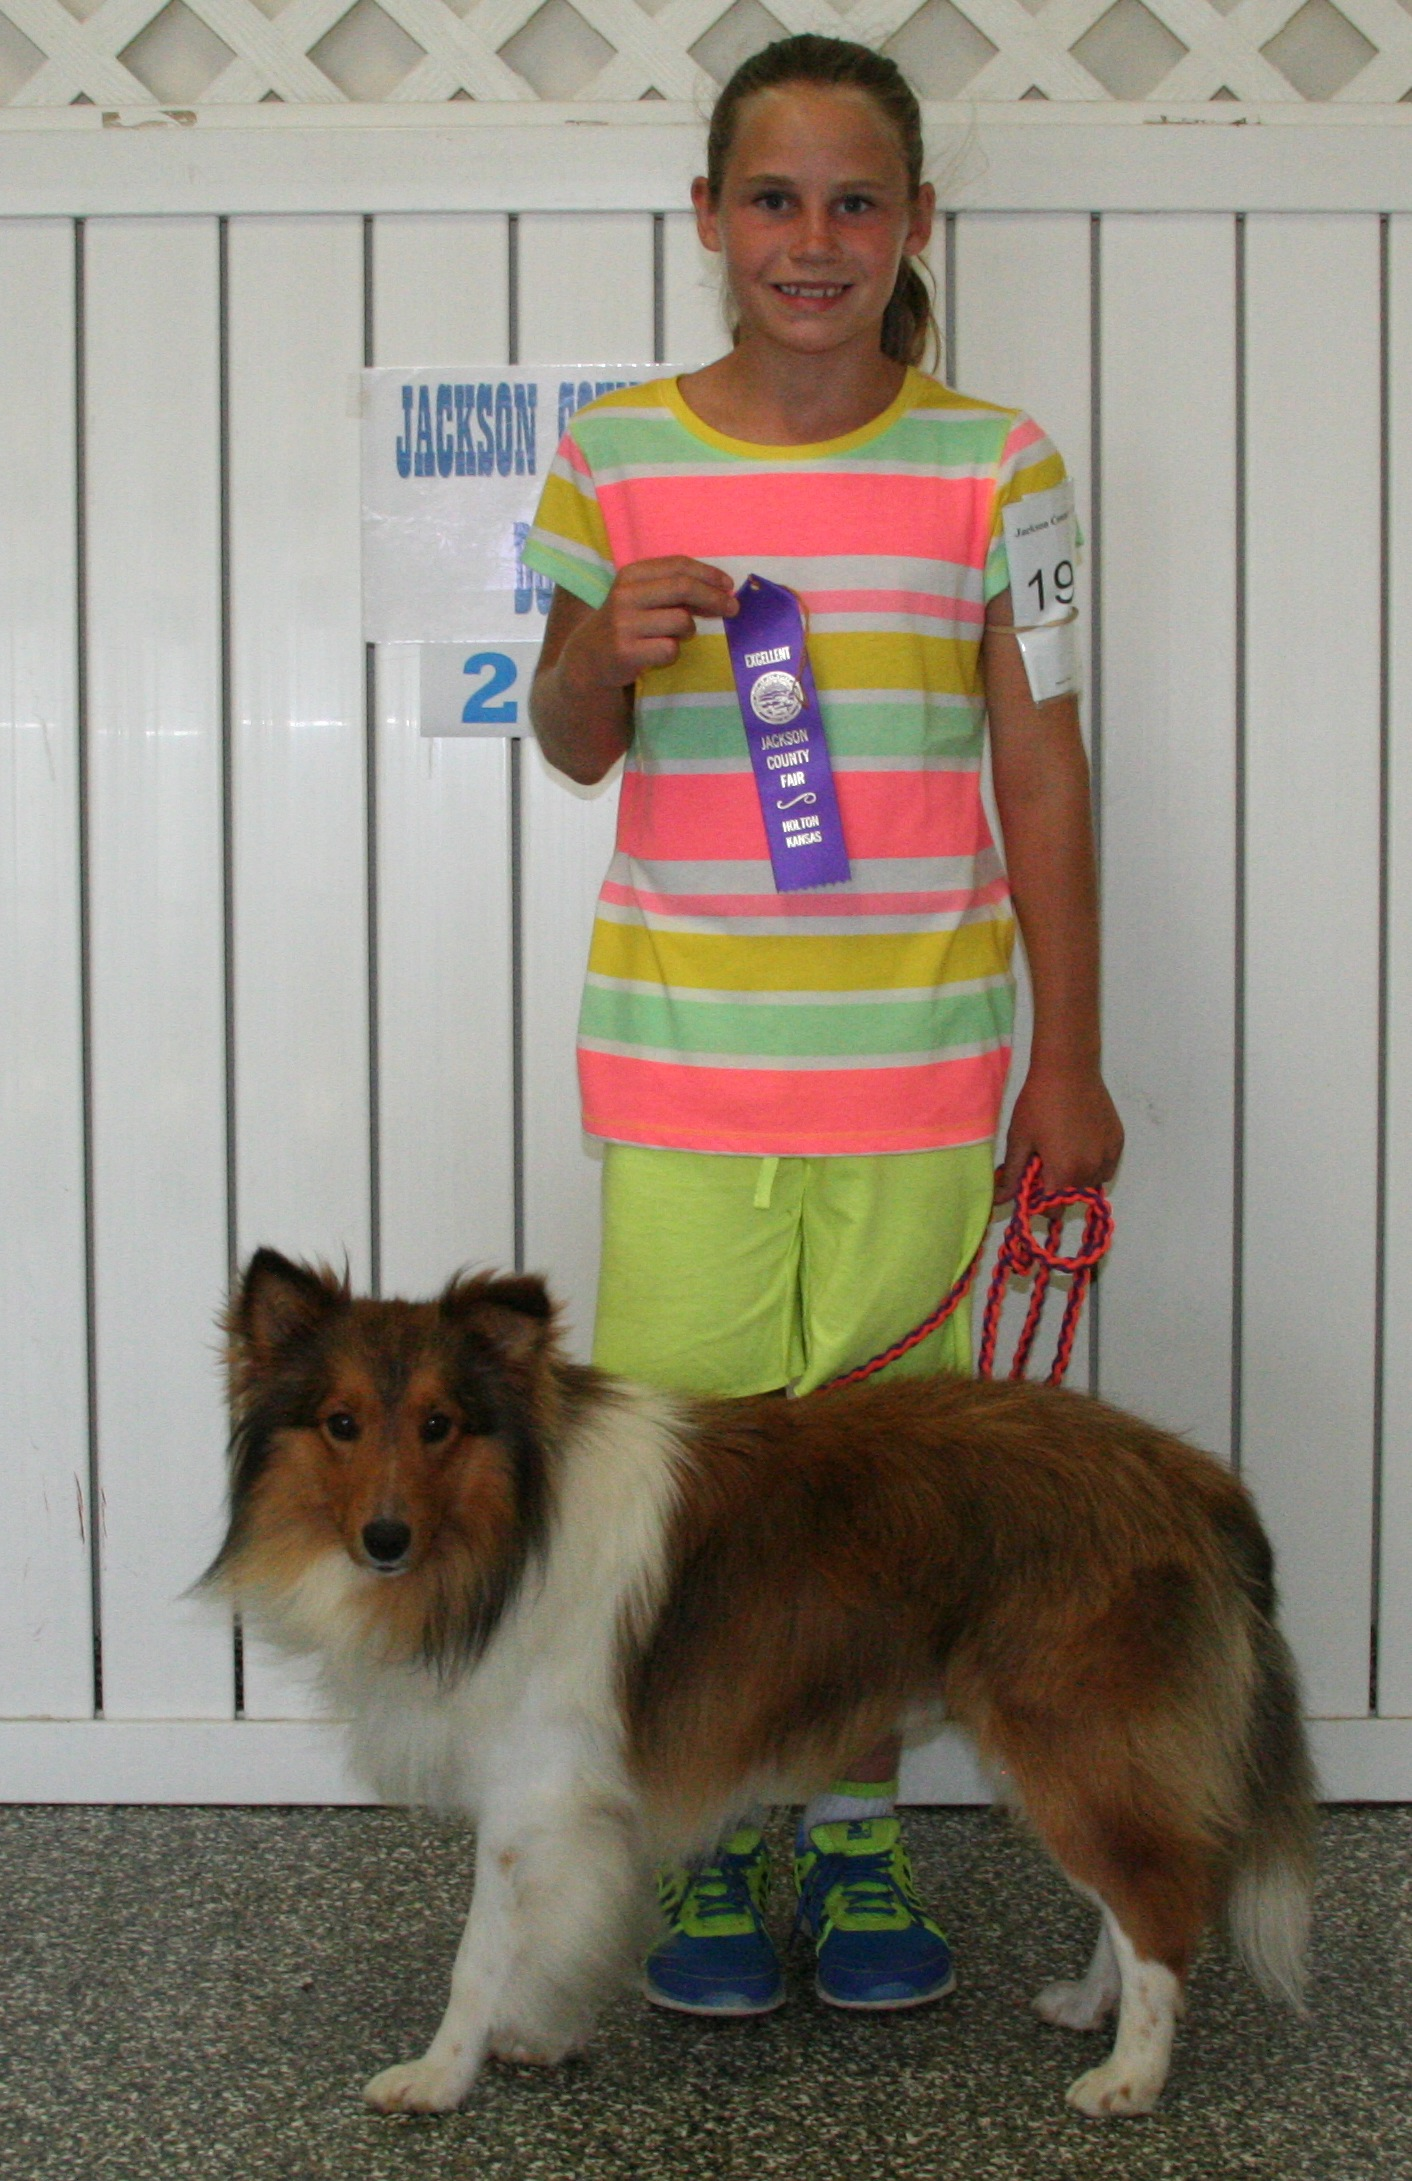 4-H Dog Show | The Holton Recorder